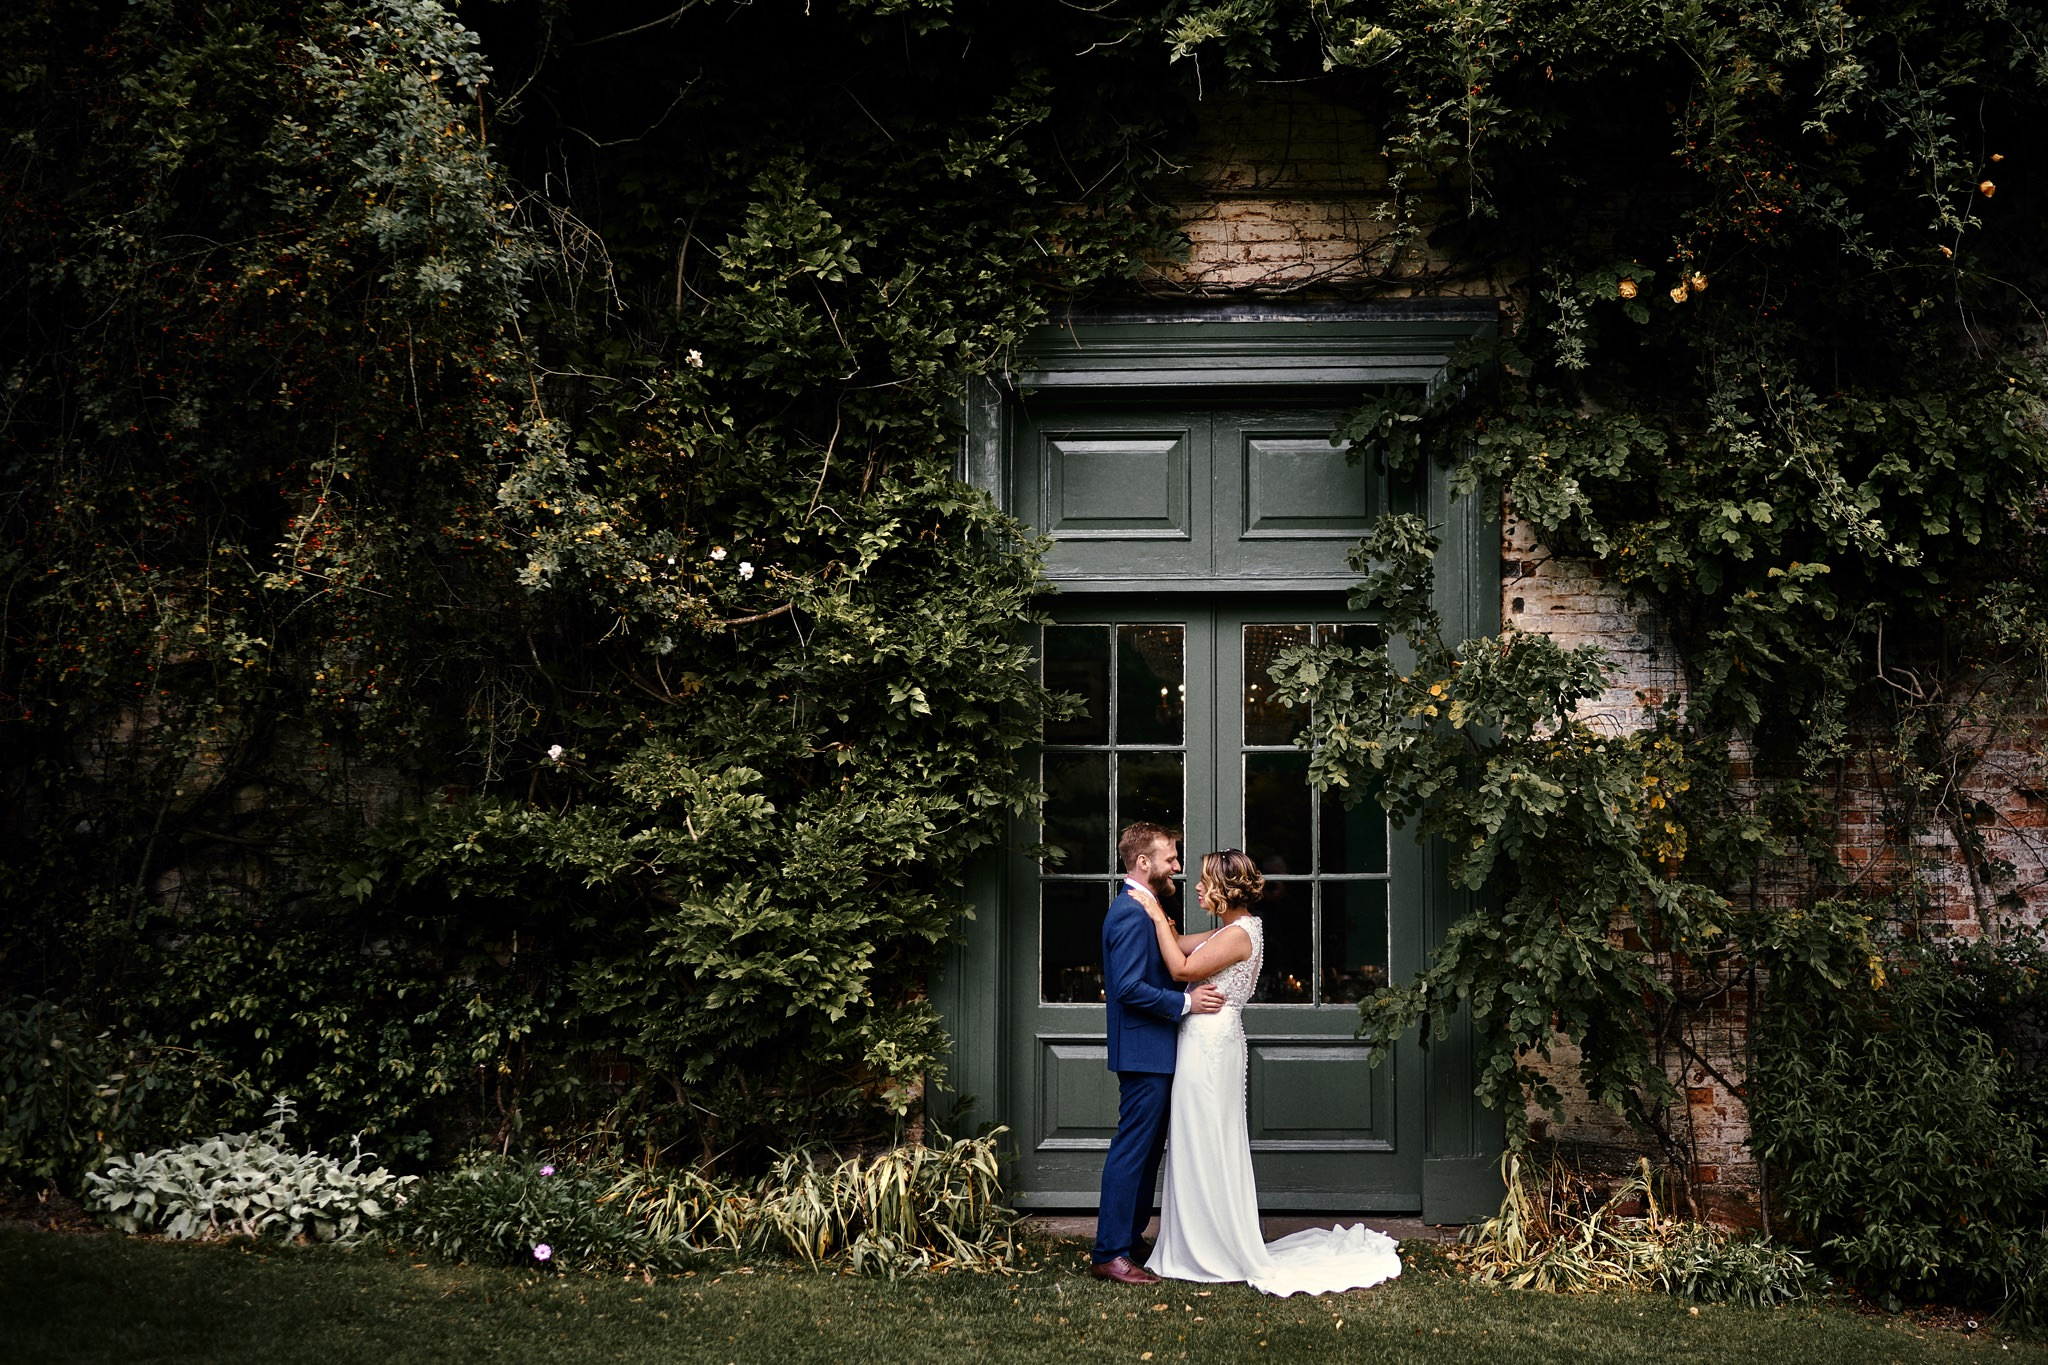 Bride and groom portraits in the garden at the beautiful Walcot Hall Hotel, Shropshire.